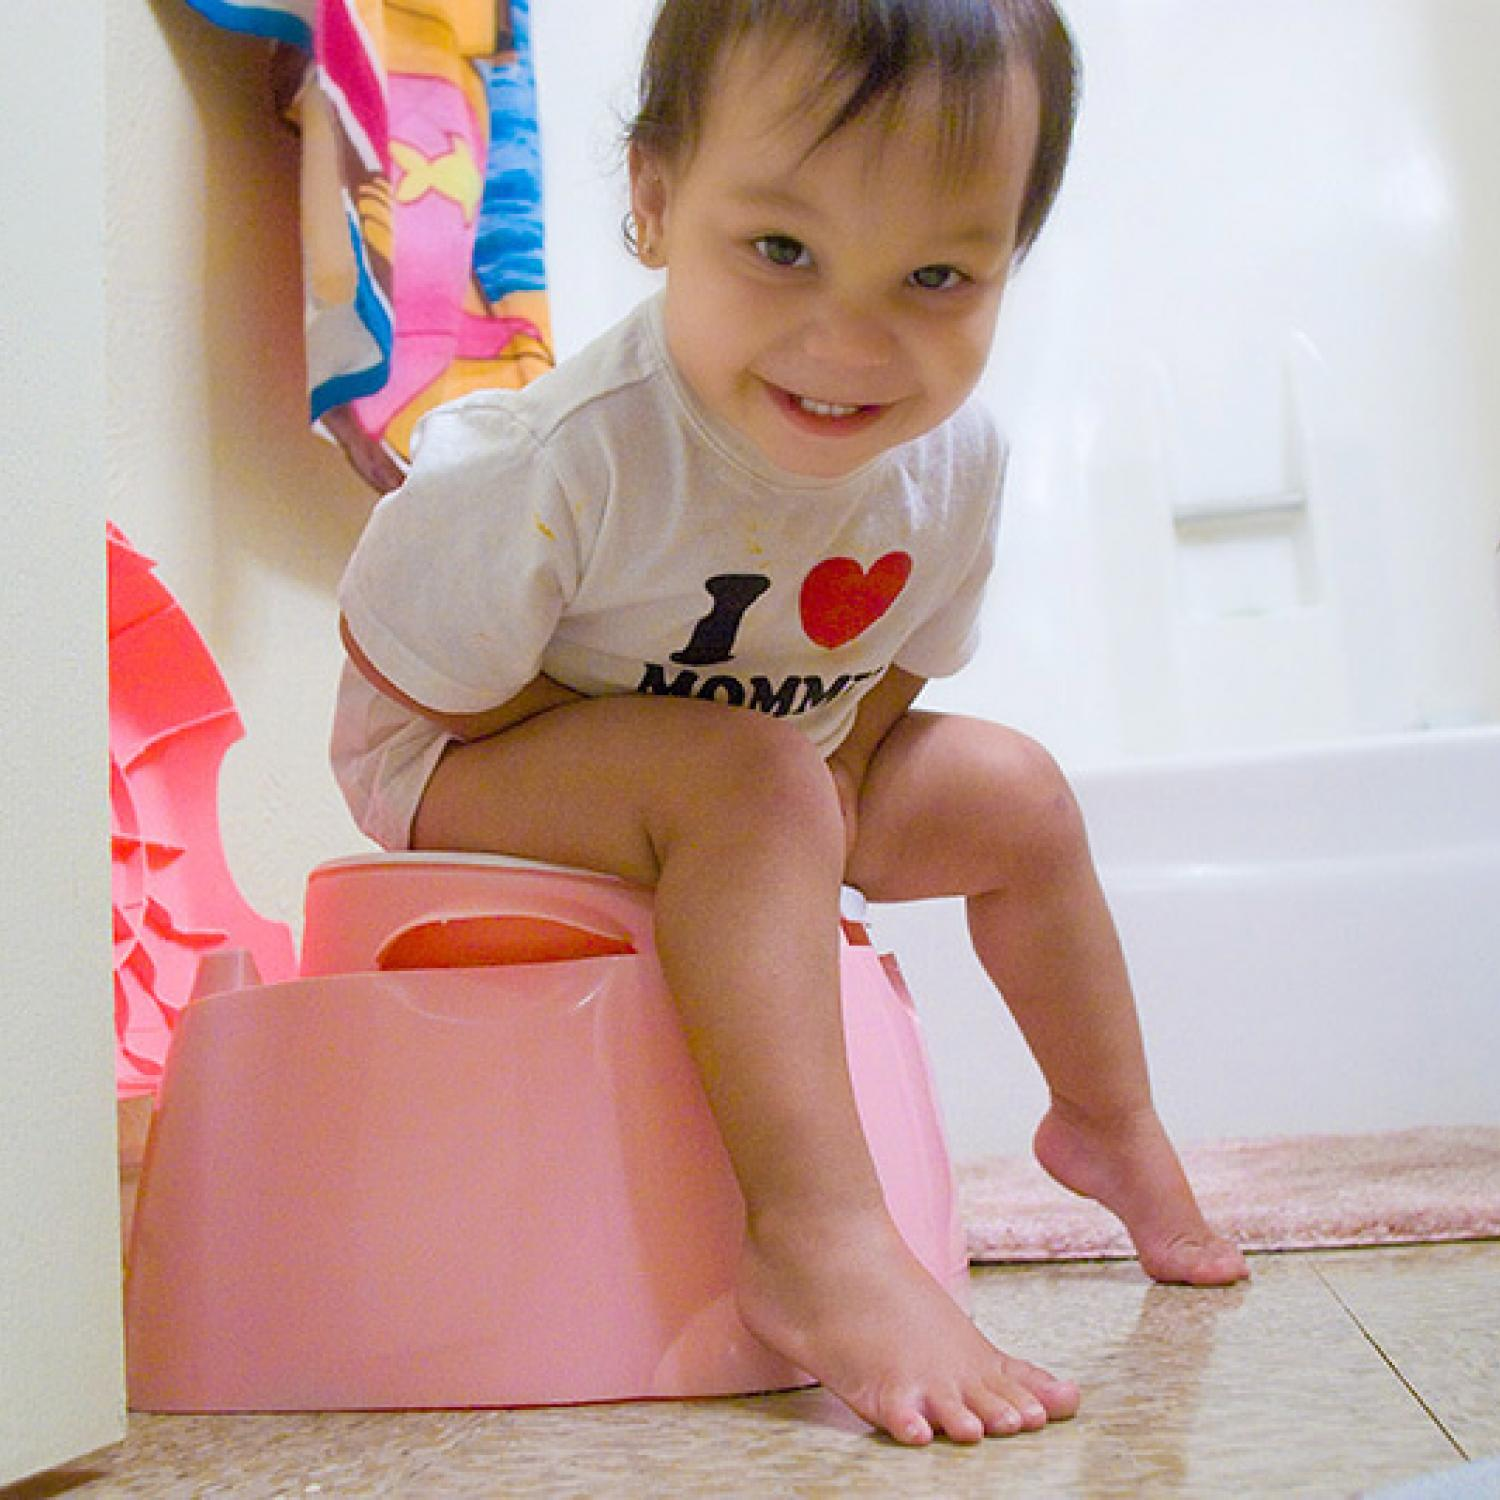 What should I do if my baby can not go to the toilet